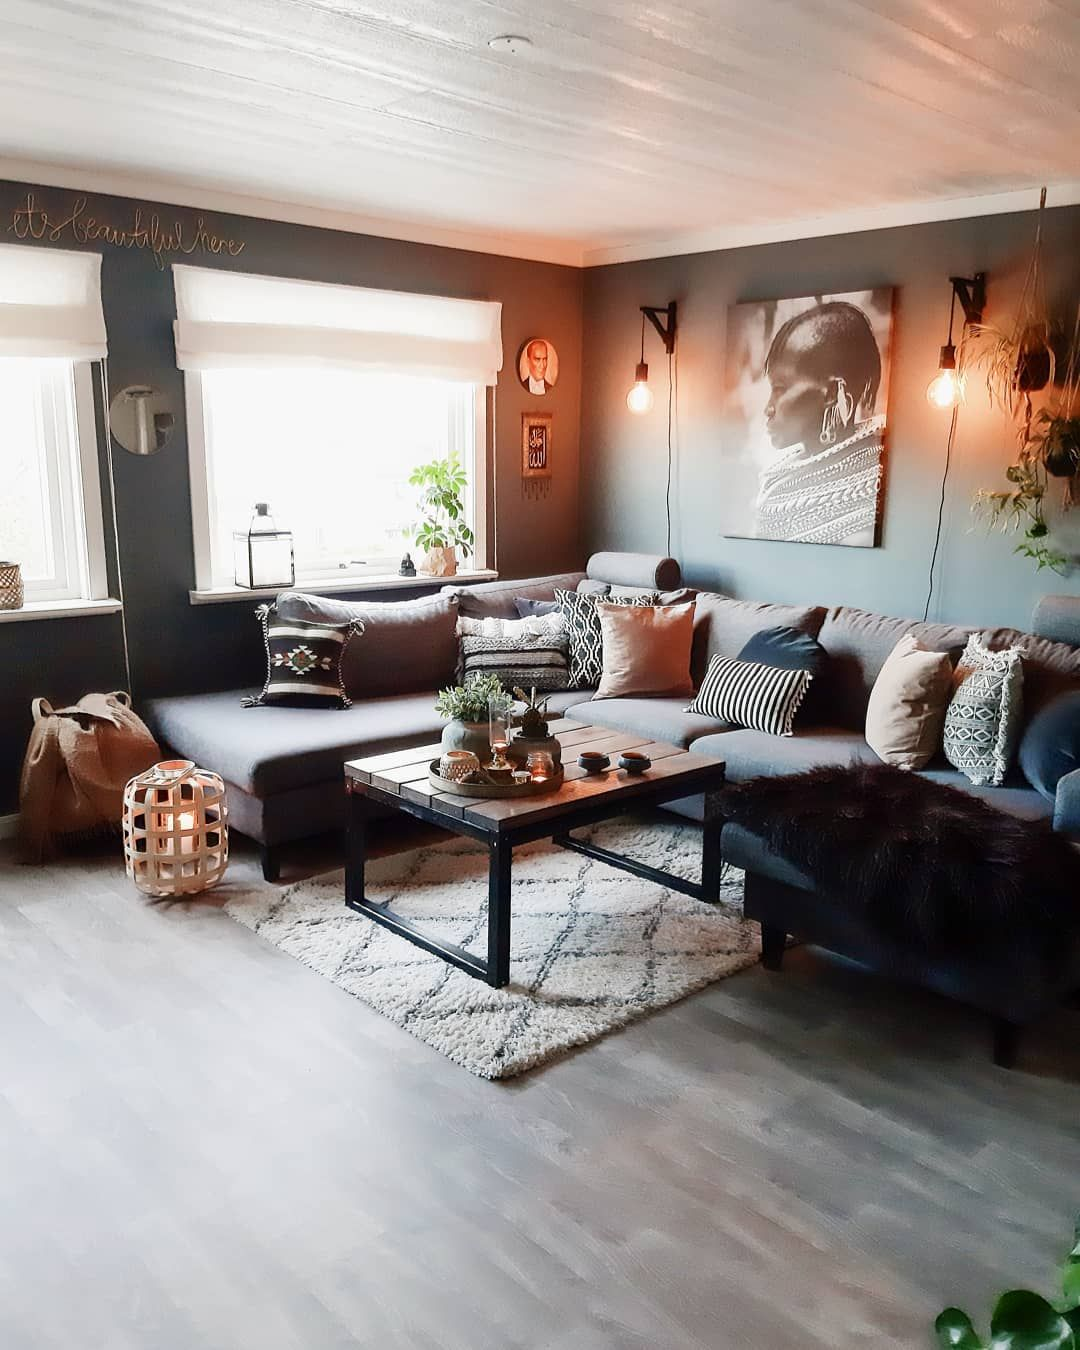 40+ Most Beautiful Living Room Ideas 2021   Page 7 of 42   hairstylesofwomens. com   Living room ...